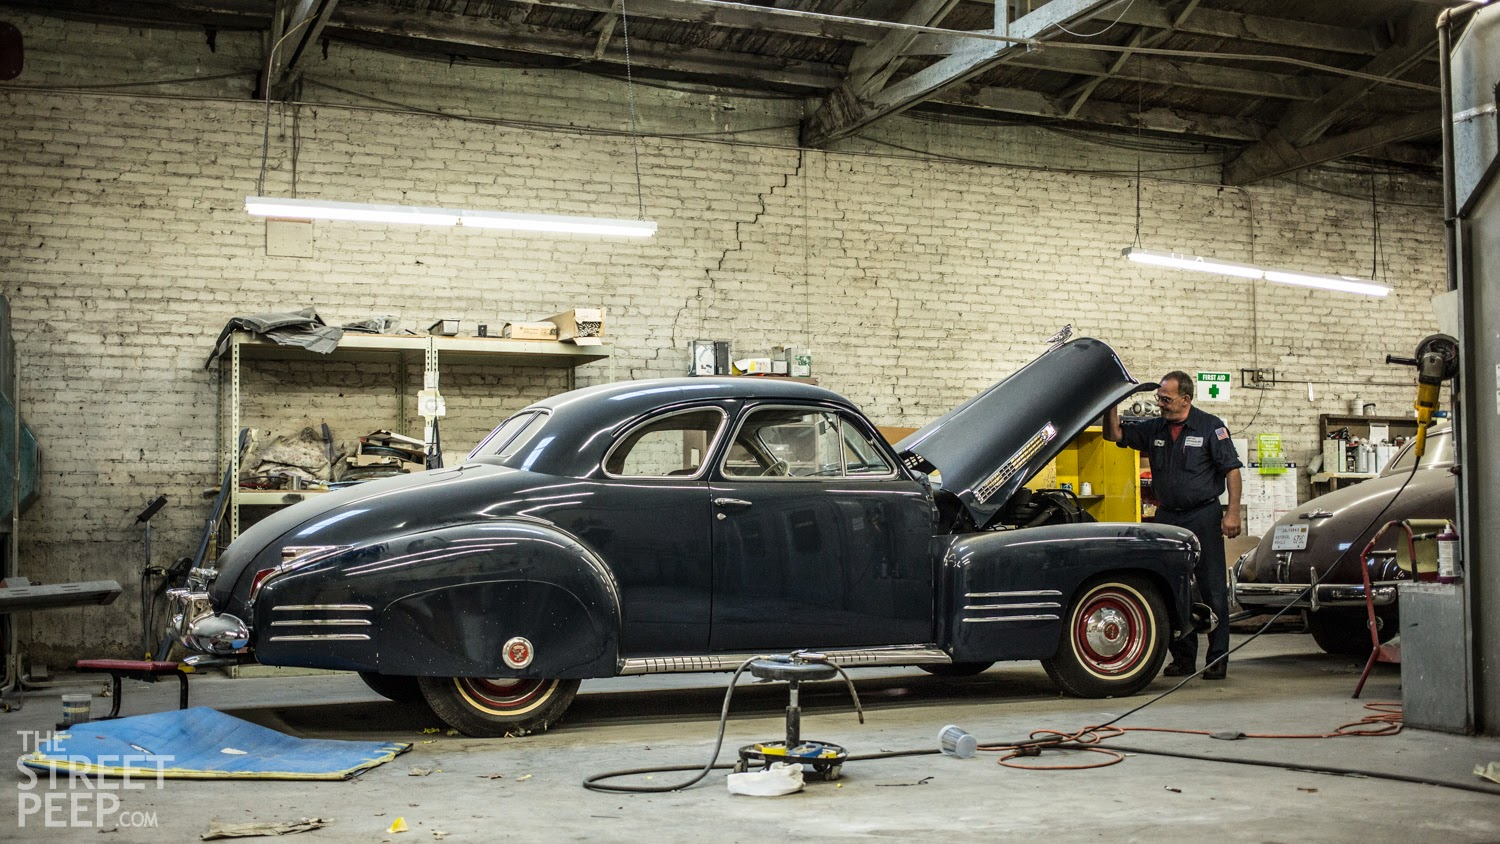 The Street Peep 1941 Cadillac Type 62 Coupe Plymouth Chopped